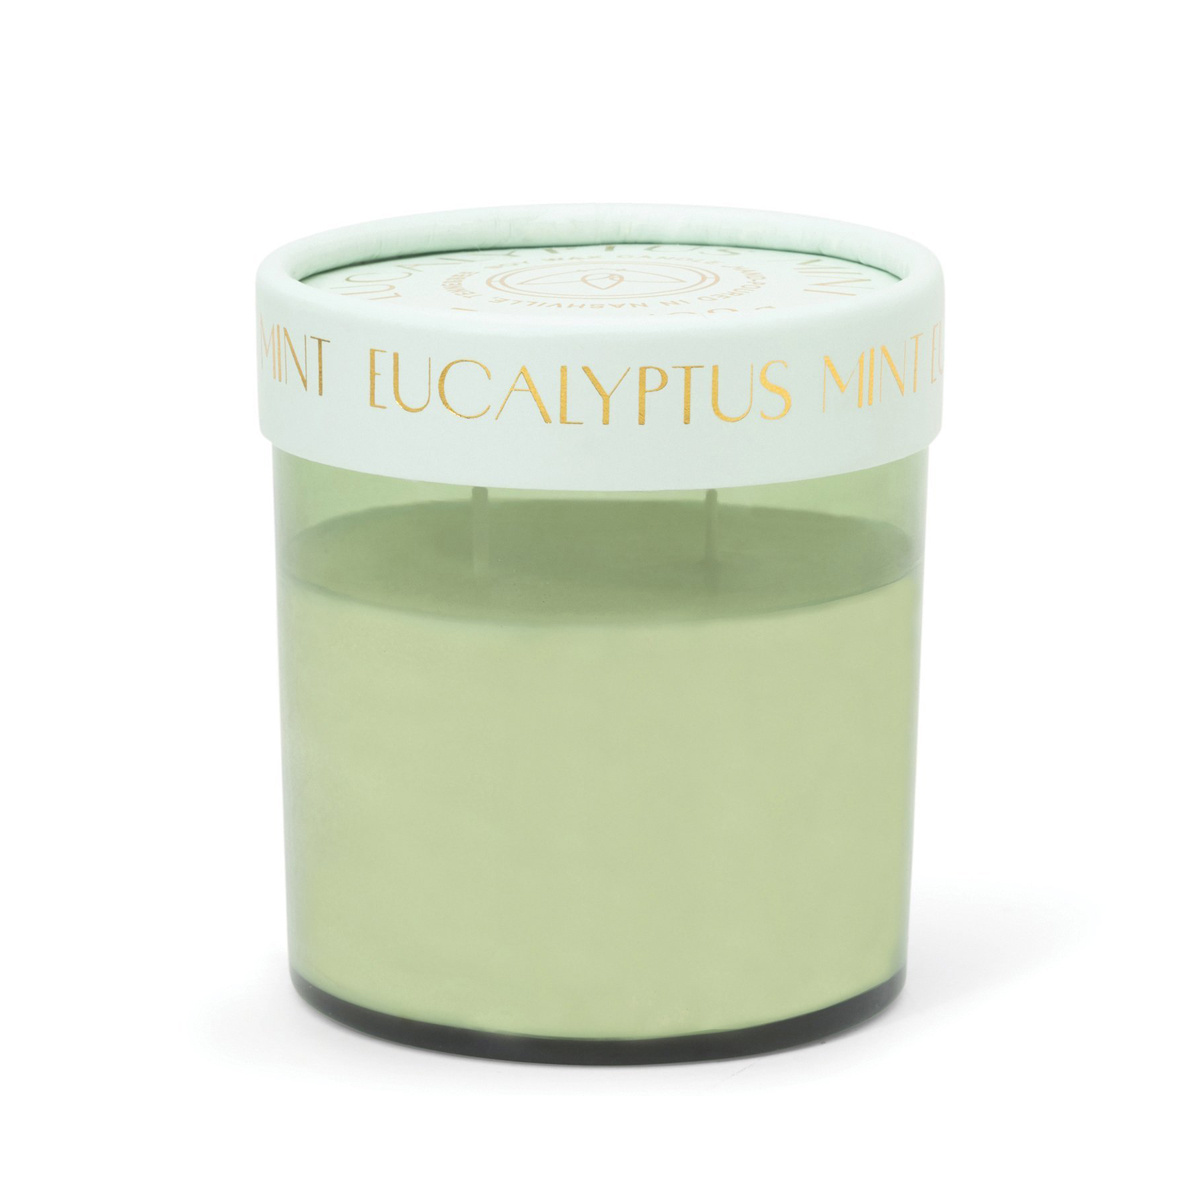 Firefly Eucalyptus Mint Optimist Candle